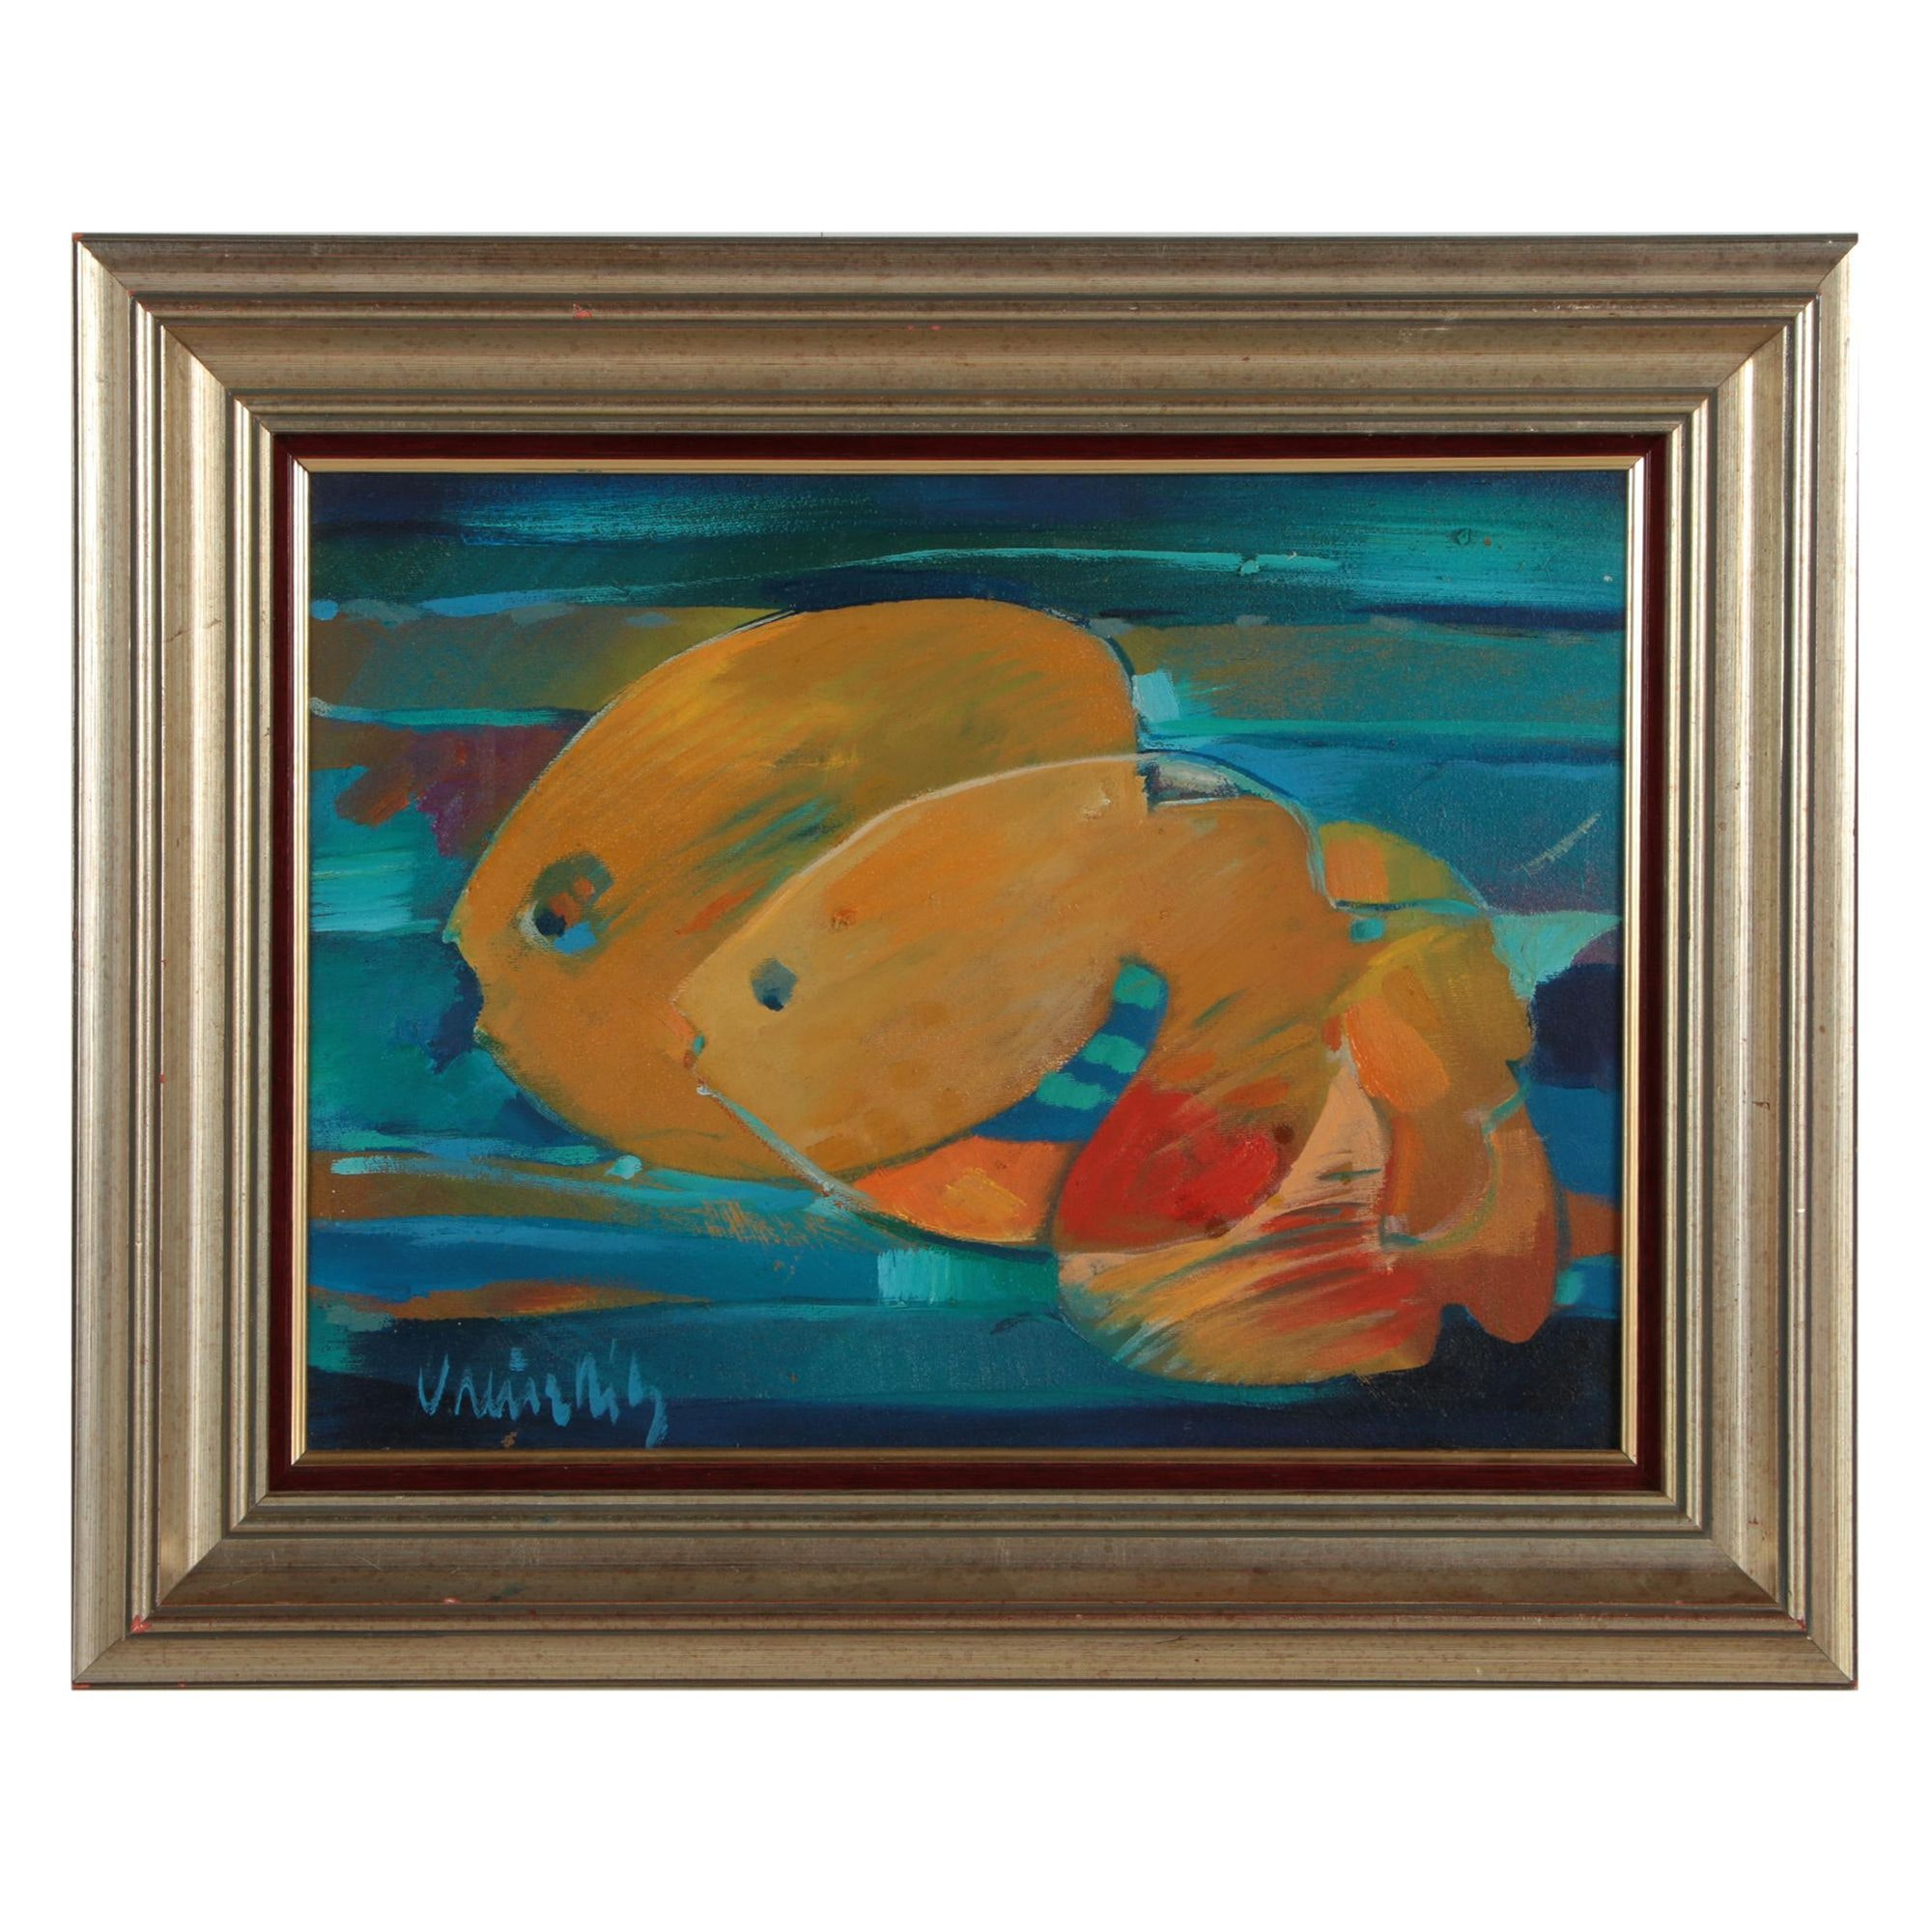 Twentieth Century Oil Painting of Fish